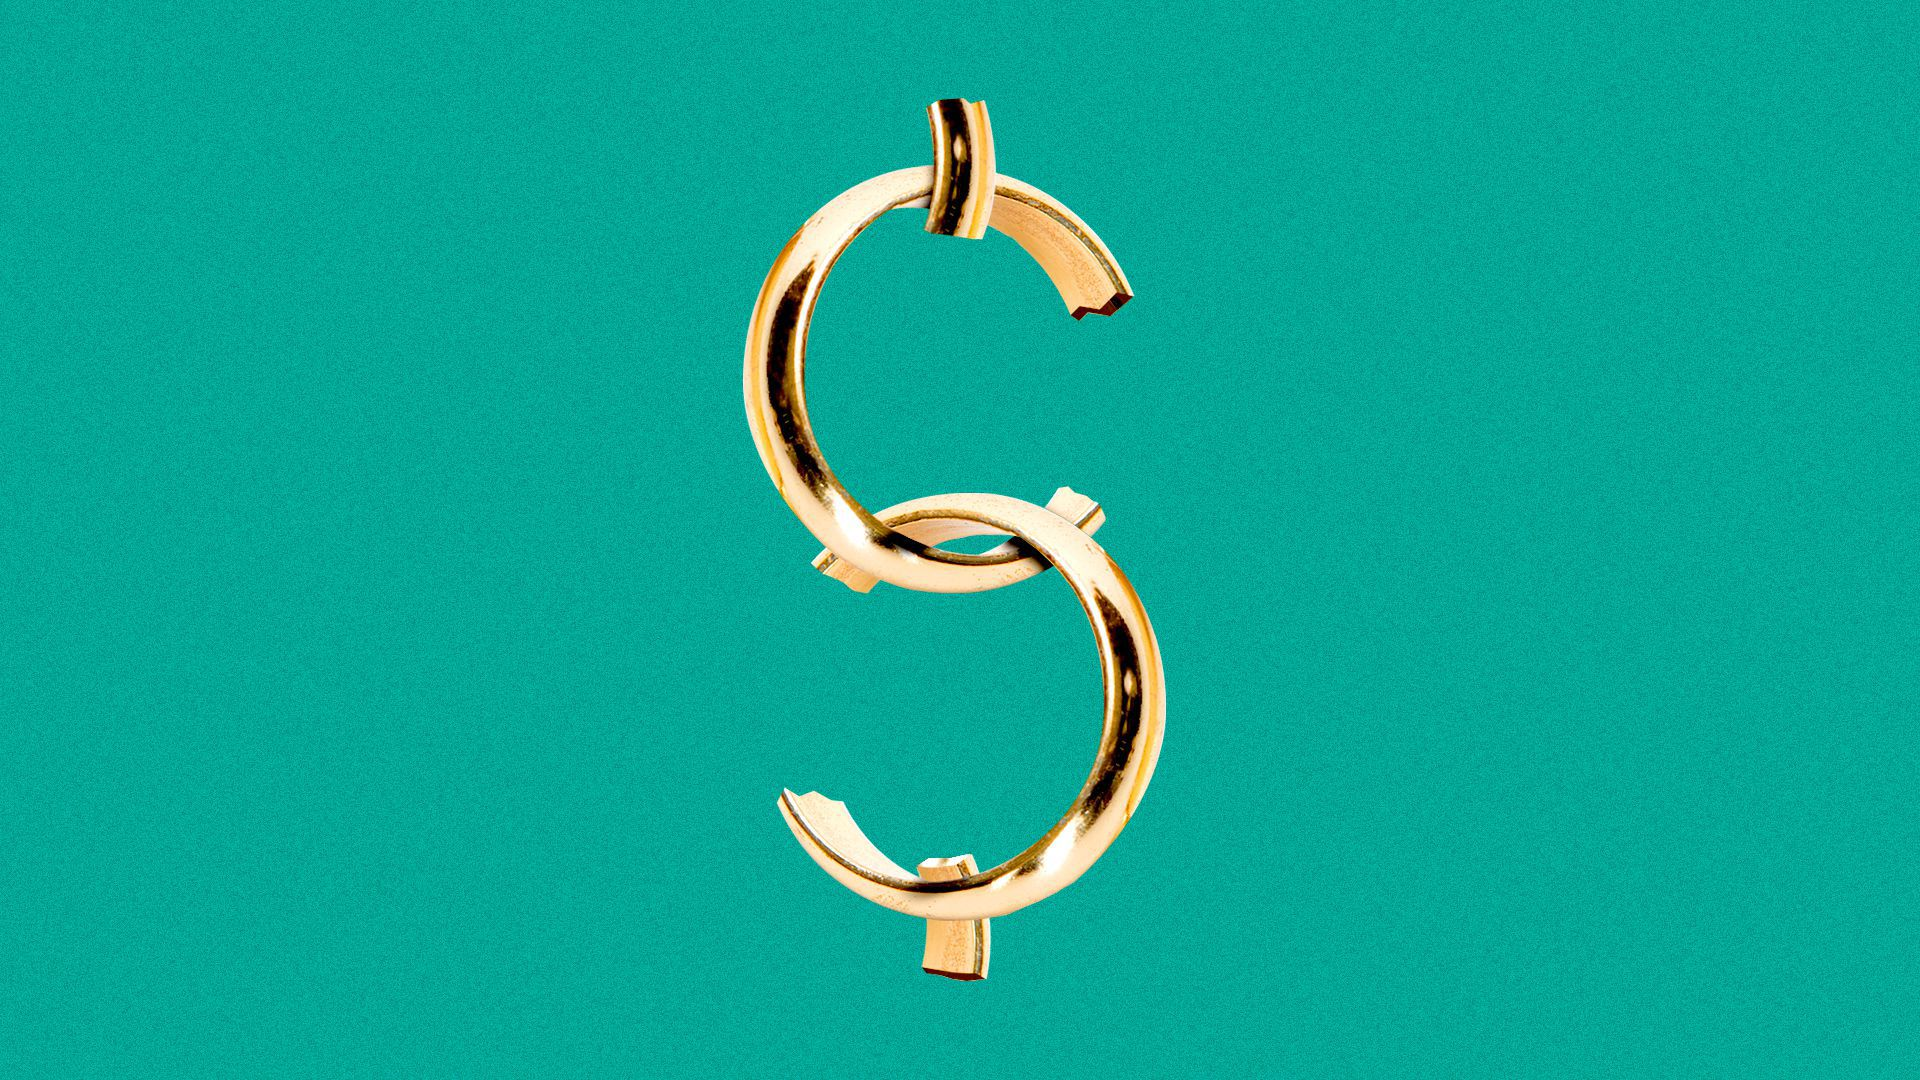 Illustration of two broken wedding bands arranged into the shape of a dollar sign.